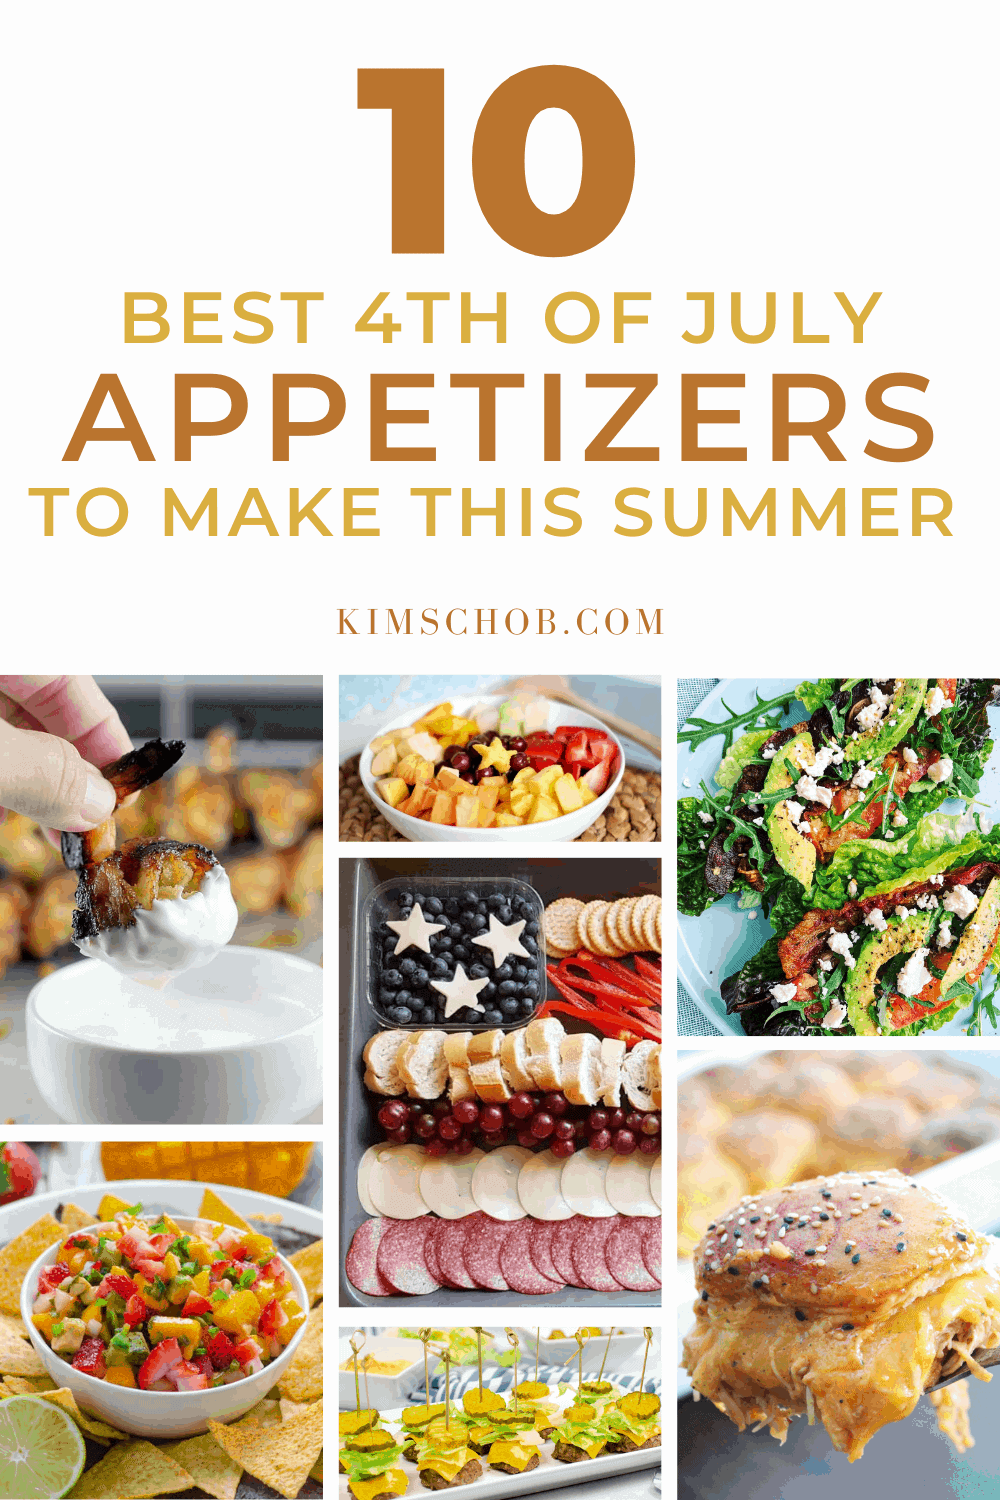 The-10-Best-4th-Of -July-Appetizers-To-Make-This-Summer